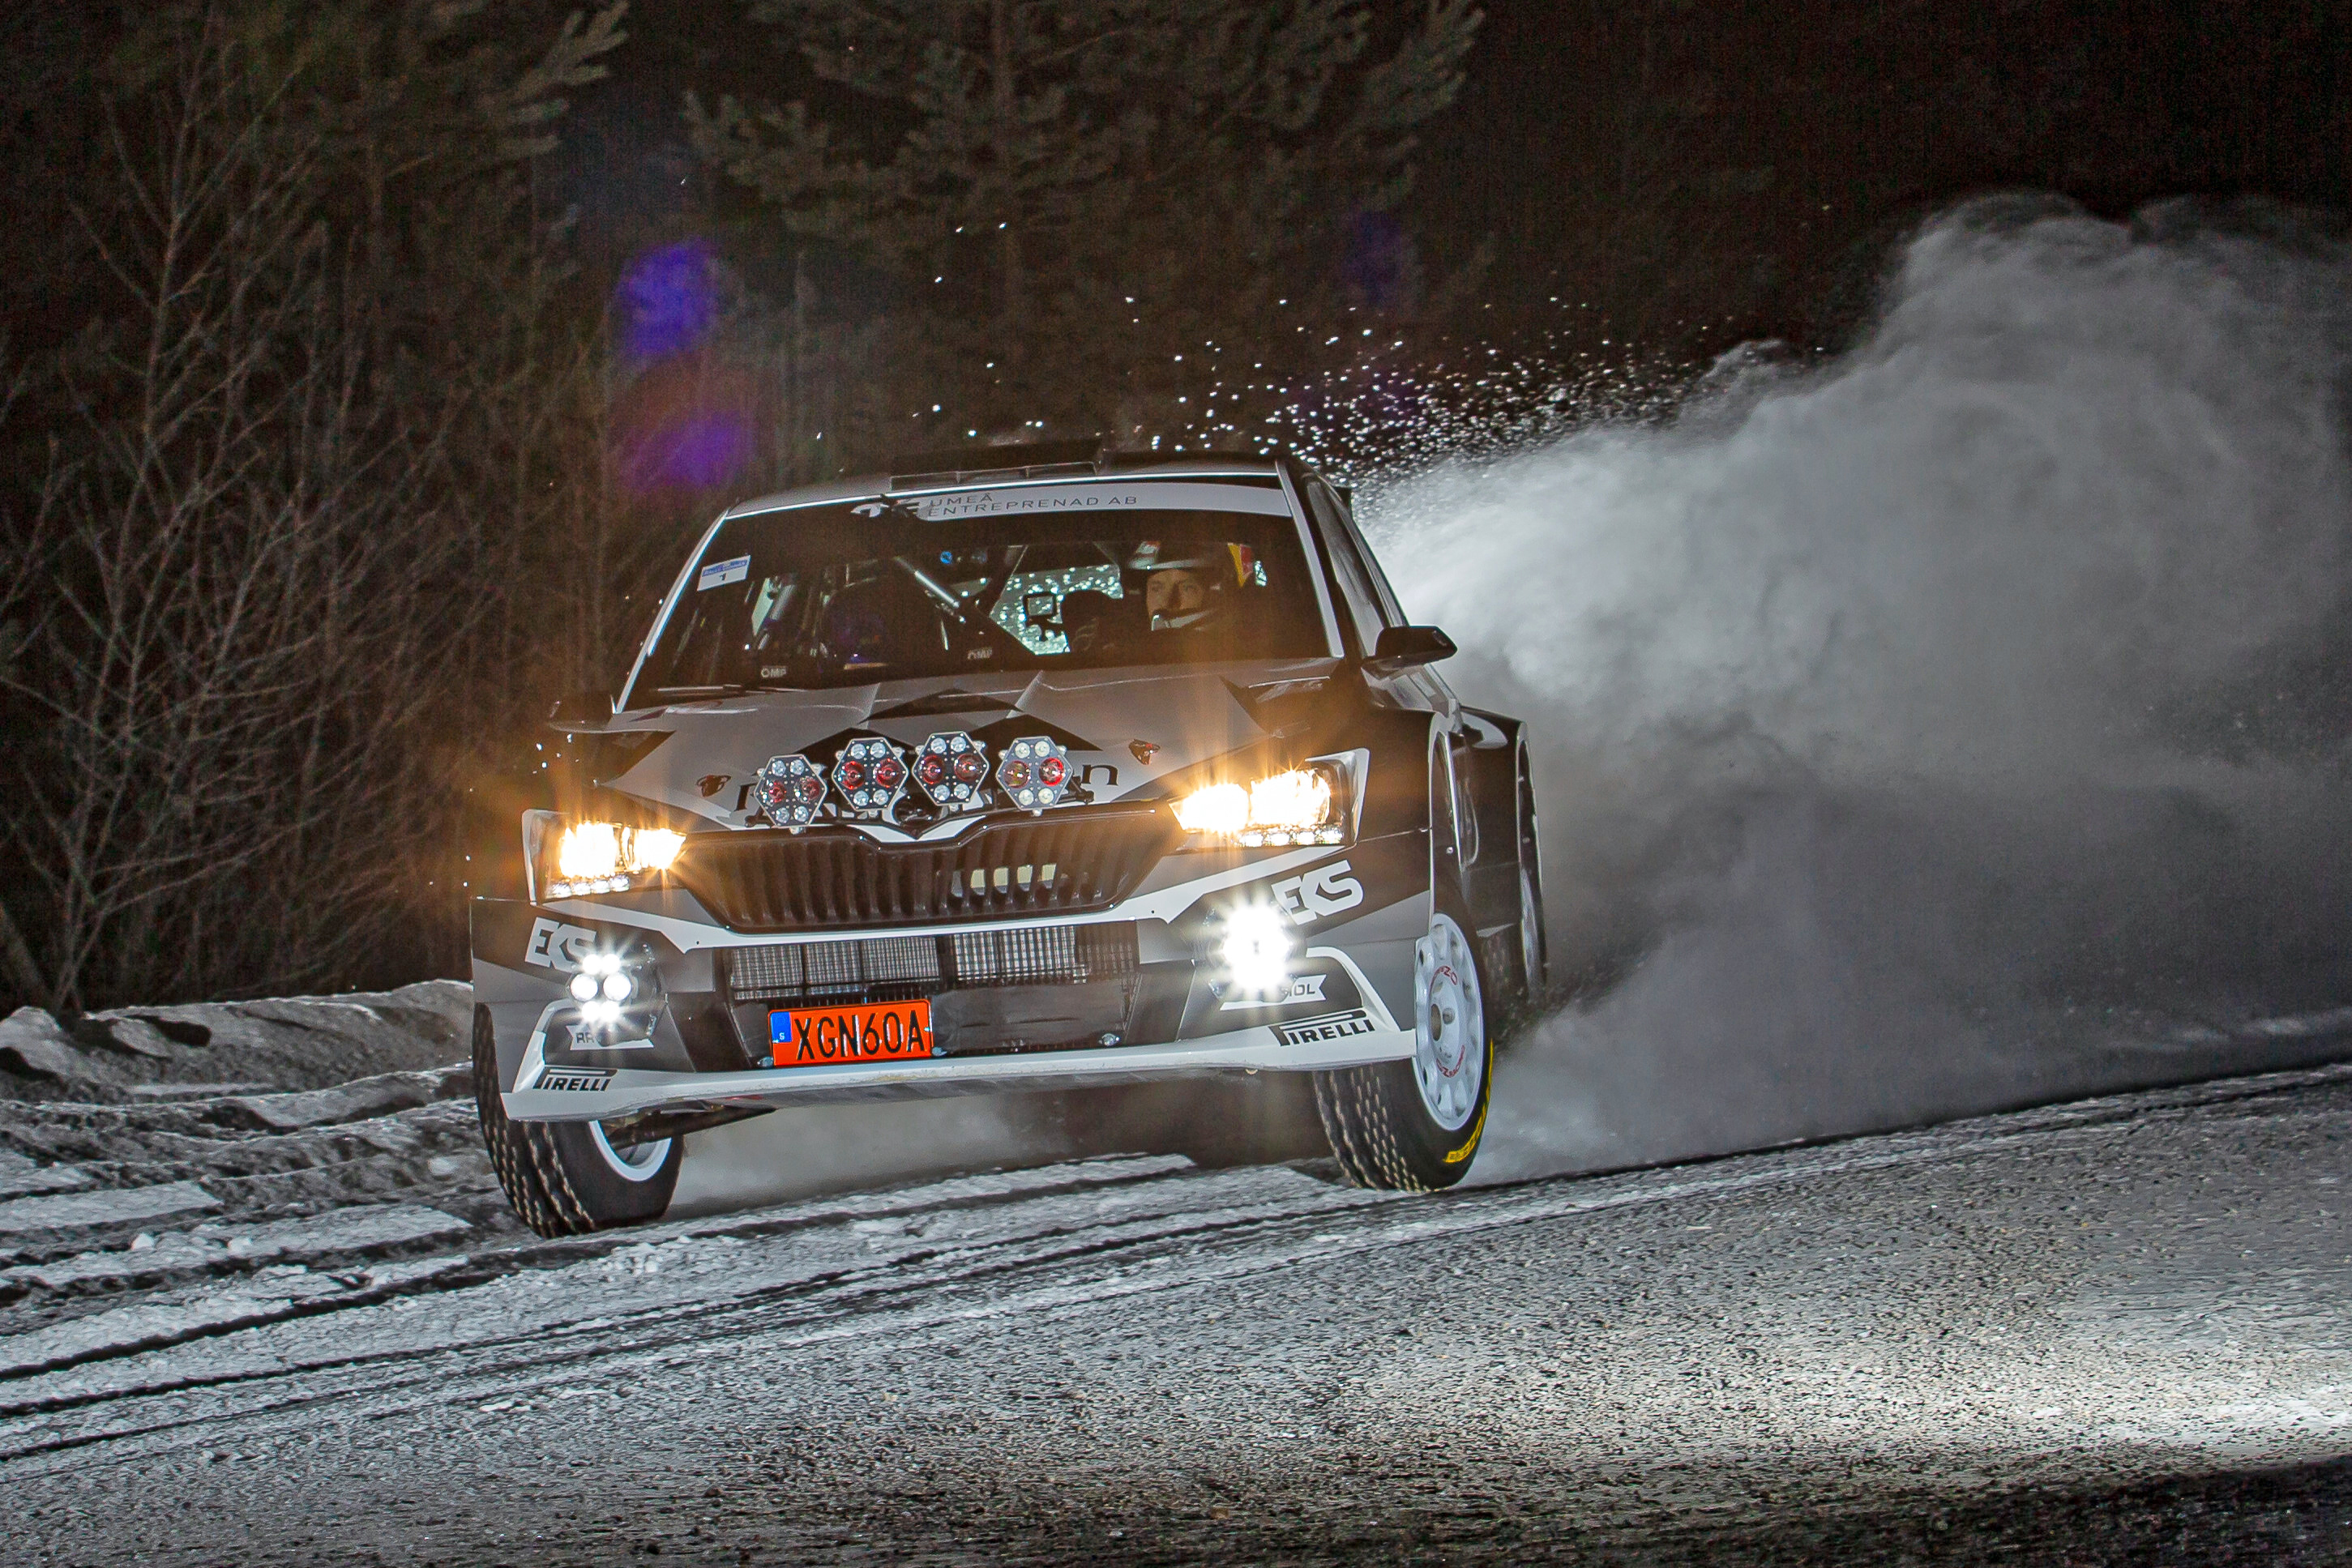 Arctic Rally Finland: WRC2 leader Mikkelsen faces tough competition in his SKODA FABIA Rally2 evo - Image 1